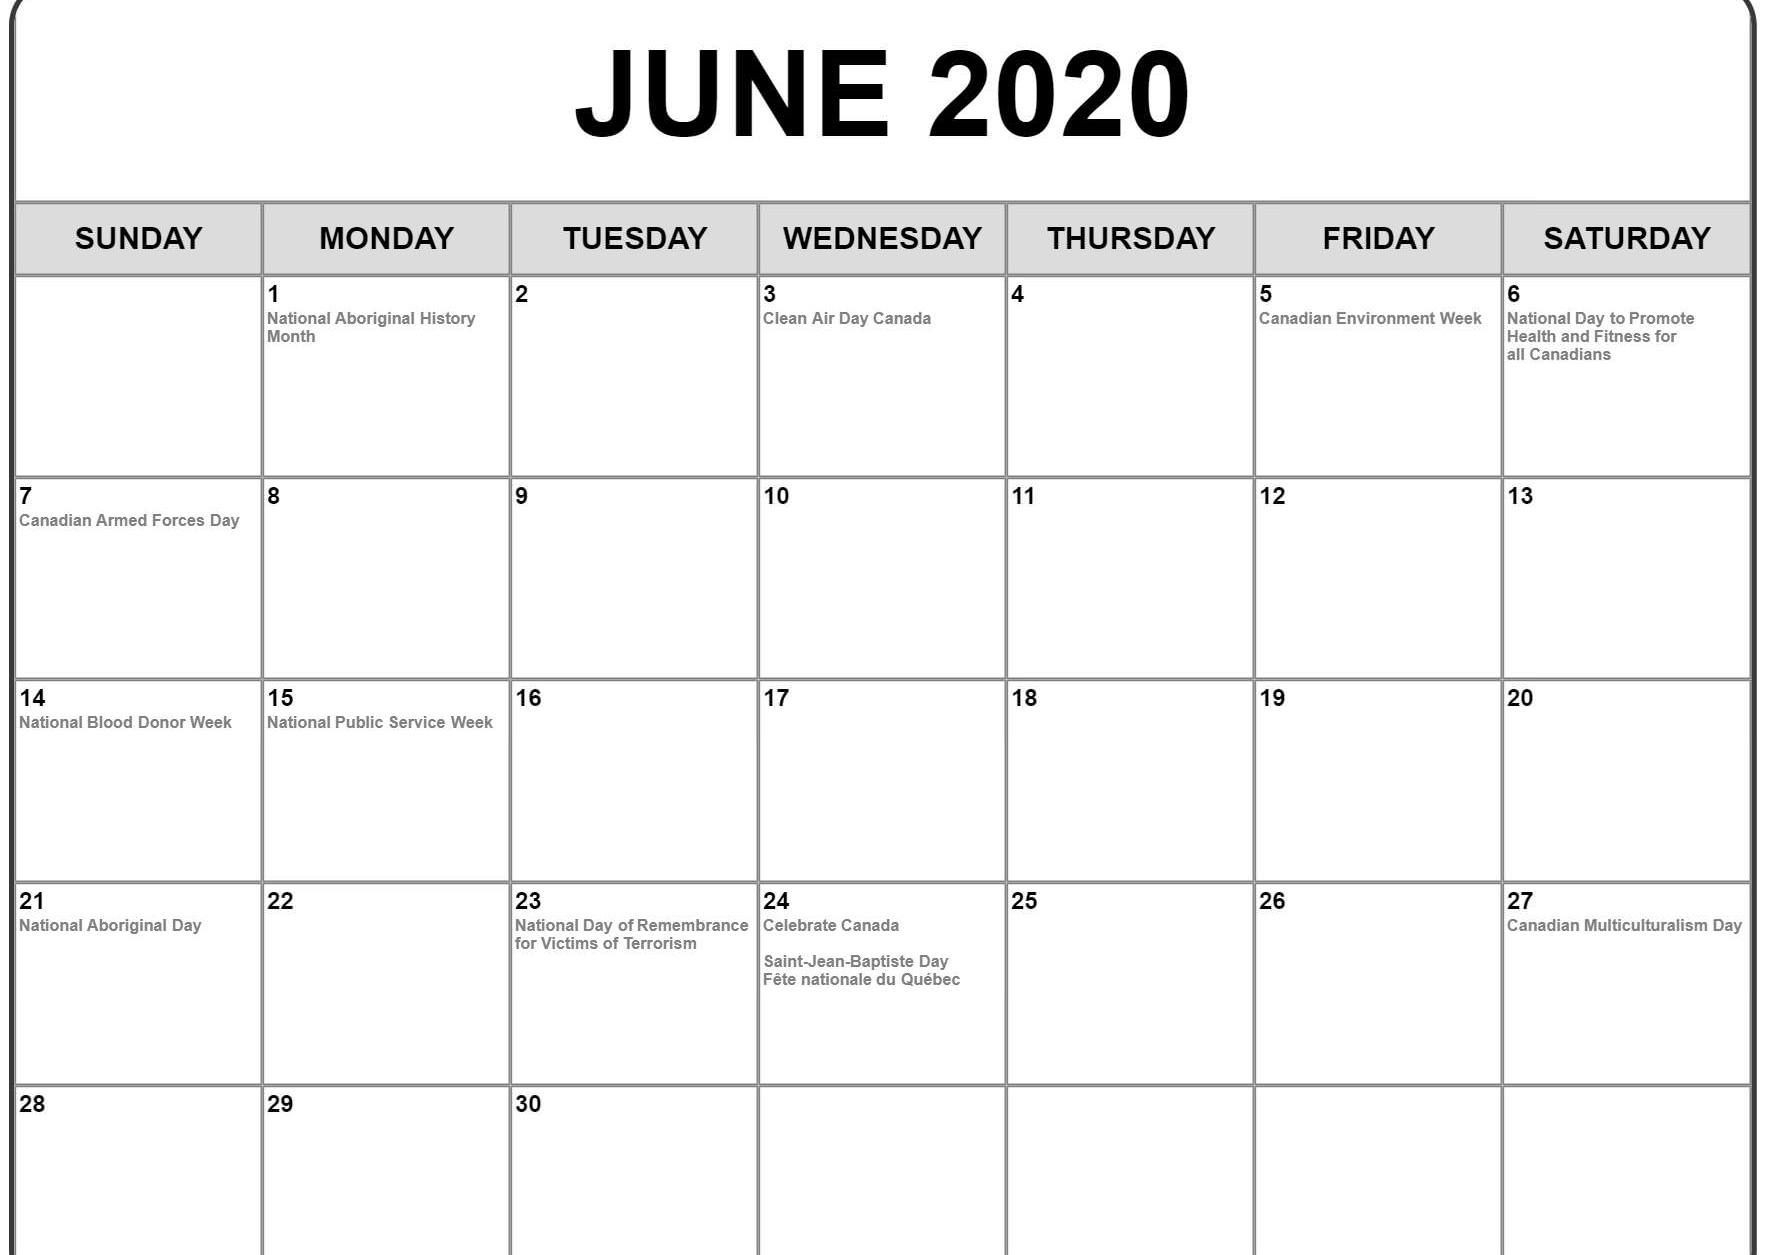 Calendar Of National Days June 2020 | Example Calendar Printable inside National Day Calendar June 2020